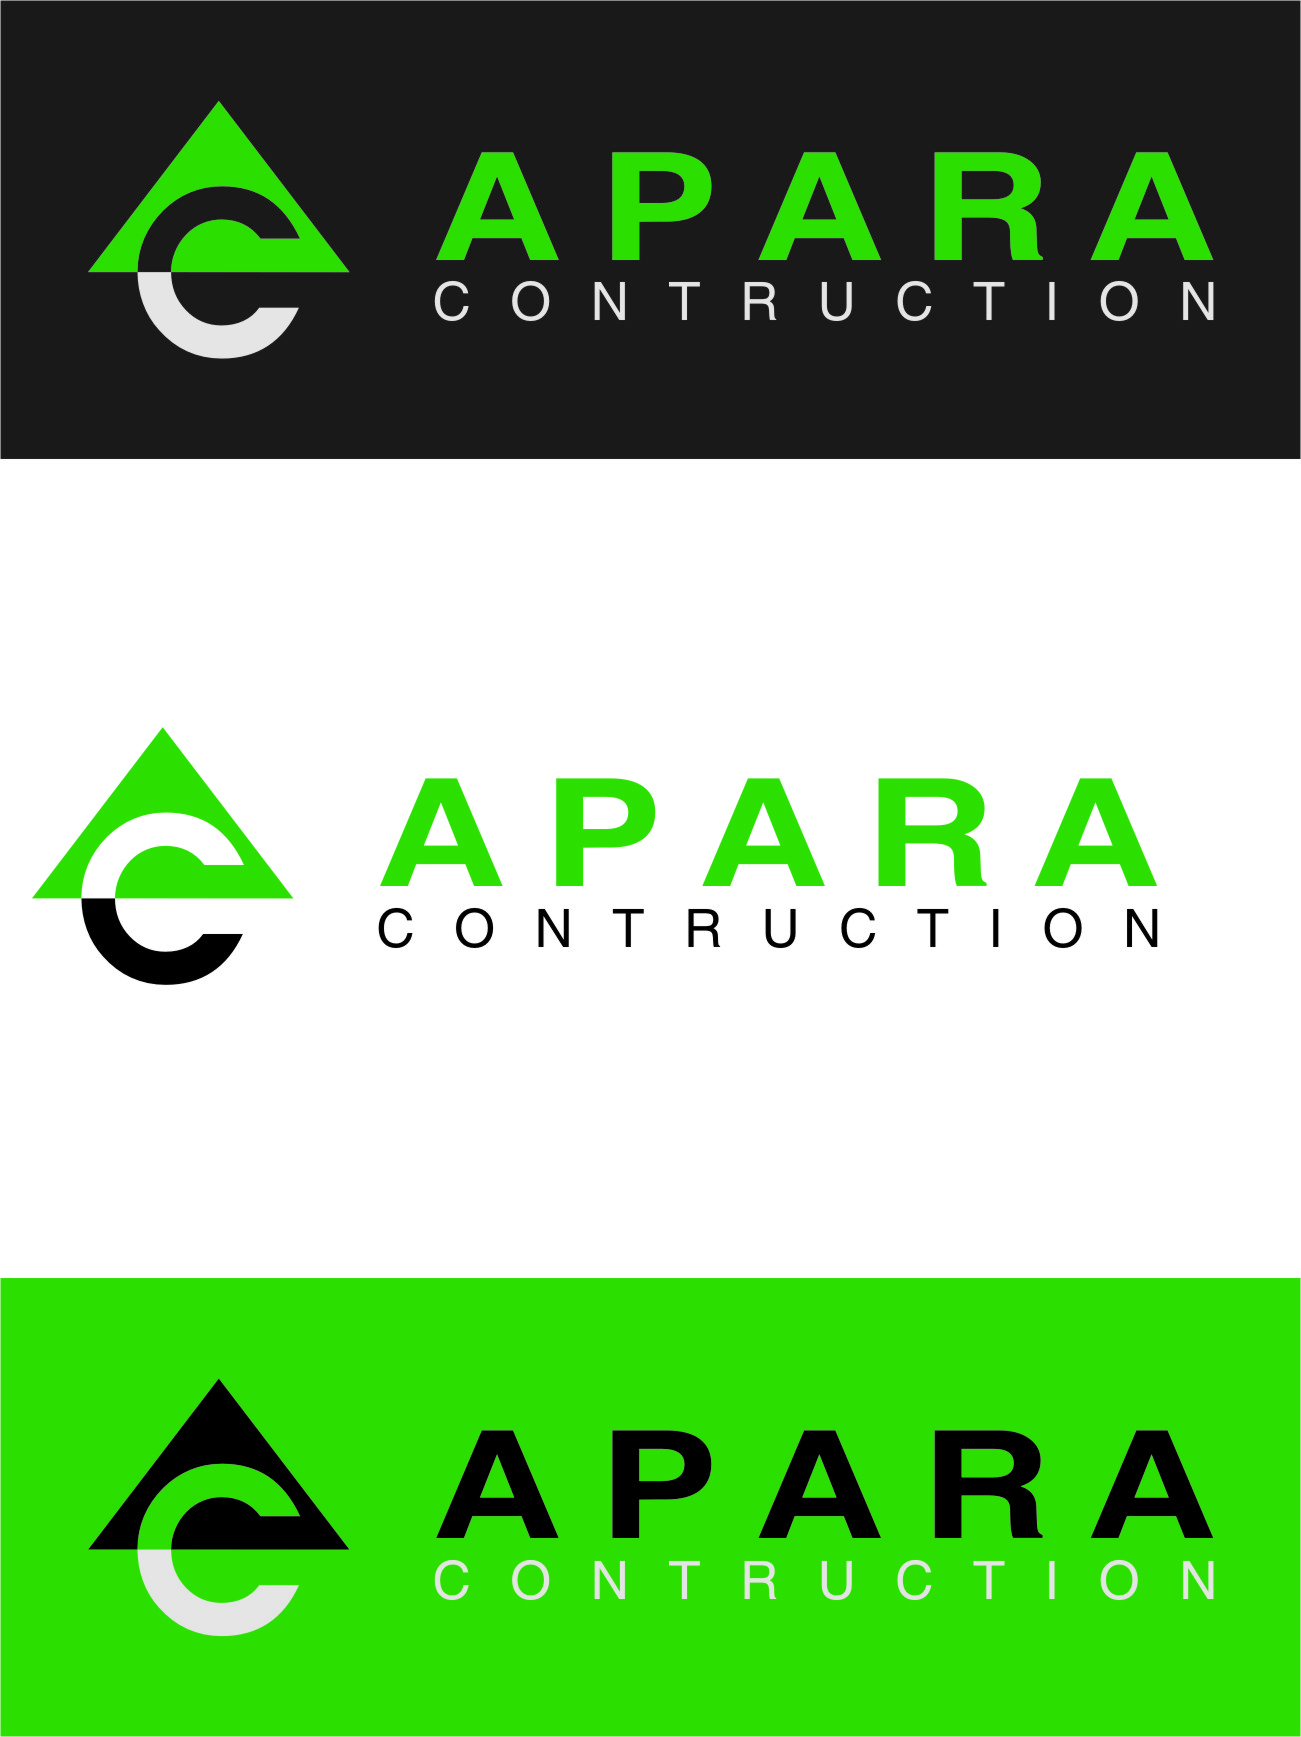 Logo Design by Ngepet_art - Entry No. 196 in the Logo Design Contest Apara Construction Logo Design.